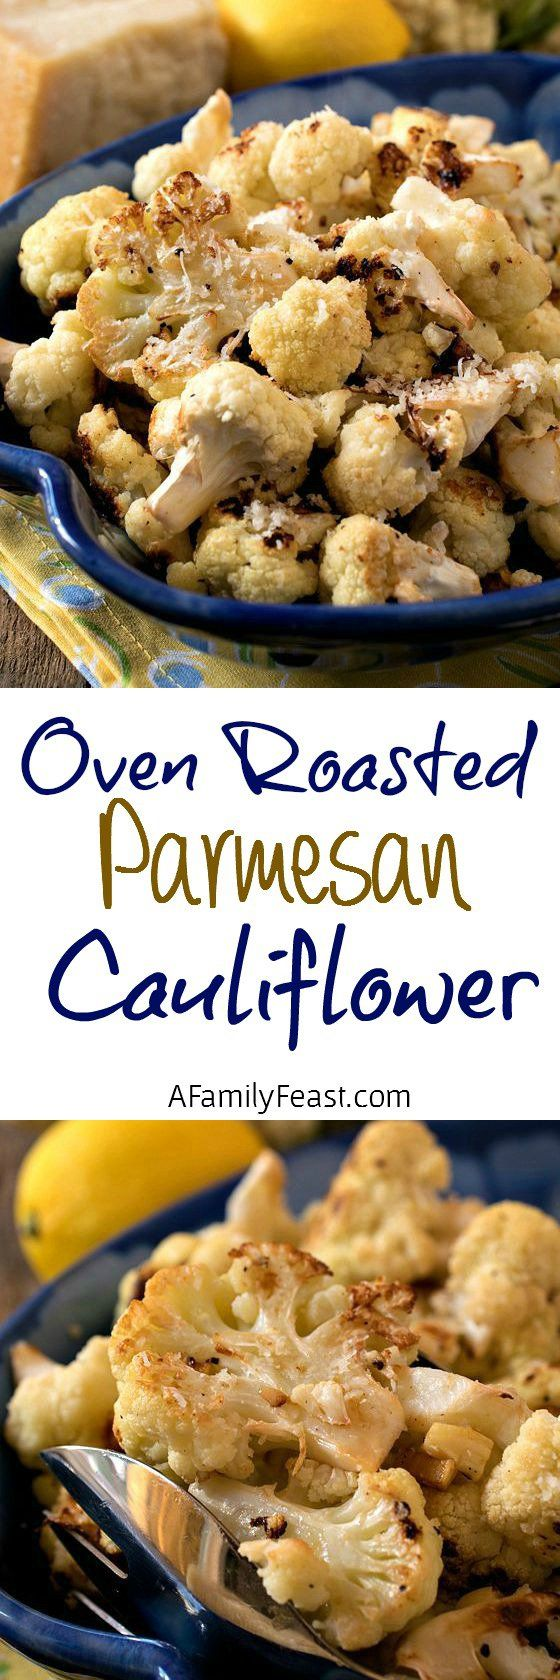 Oven Roasted Parmesan Cauliflower - A simple, delicious side dish perfect for a weeknight meal or special holiday dinner.